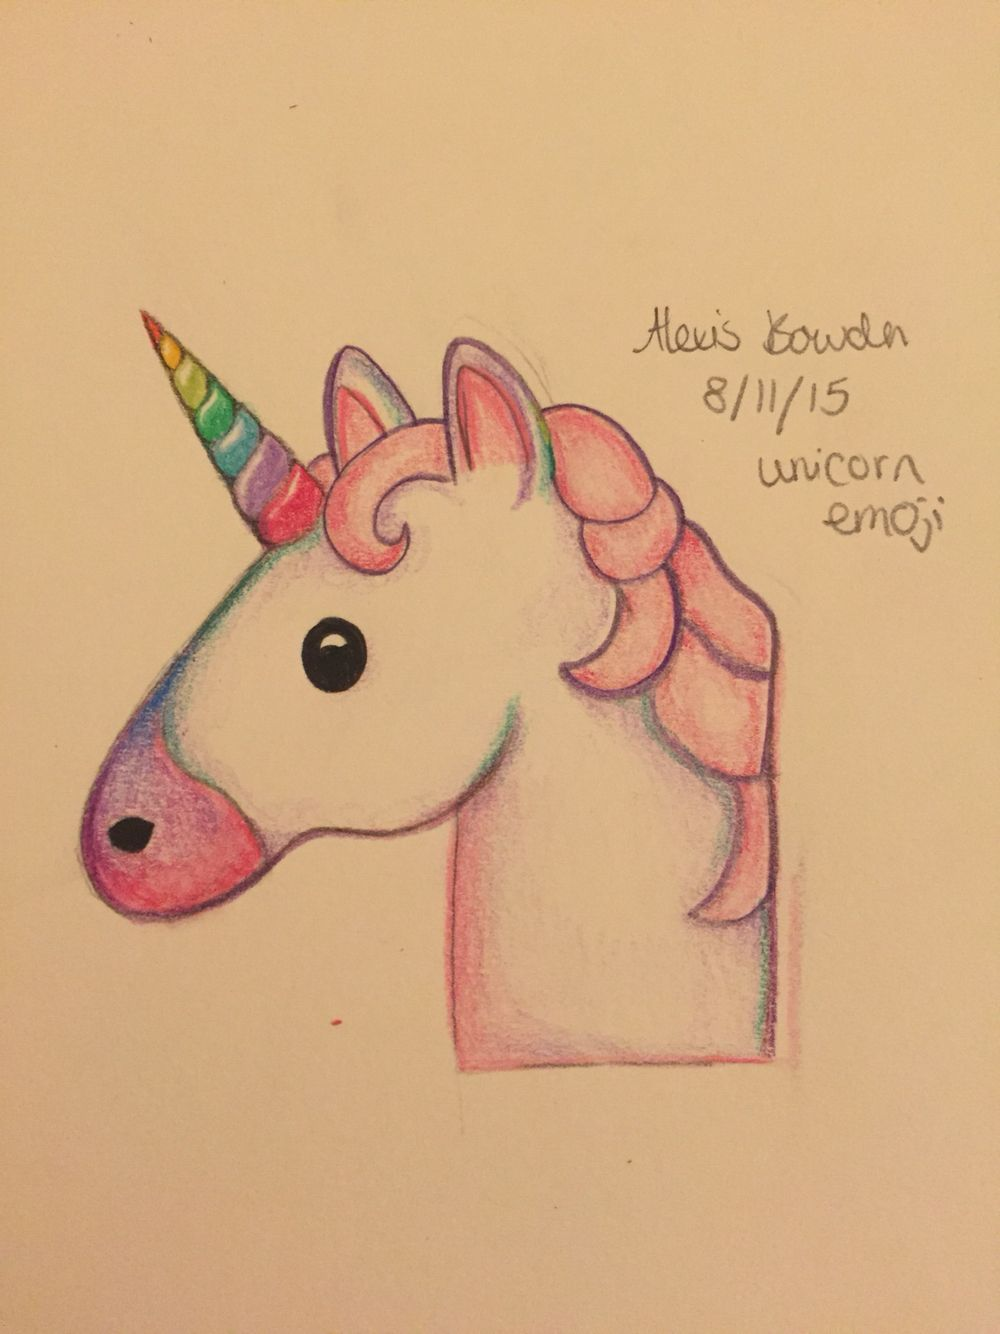 Unicorn emoji plus beautiful drawings